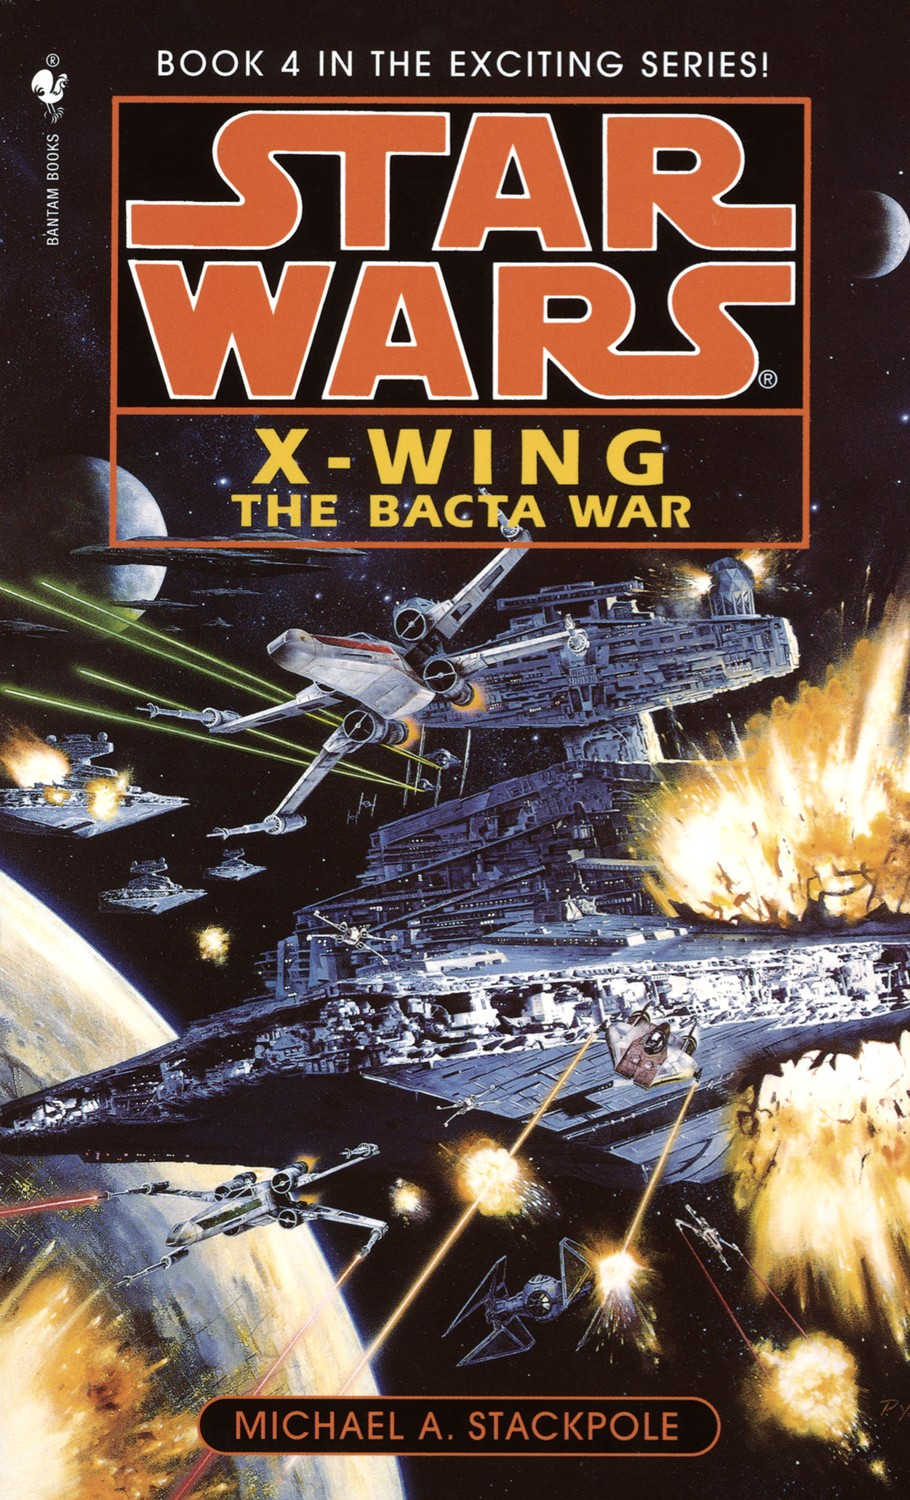 PART 14     The Bacta War  (1997)  by Michael A. Stackpole